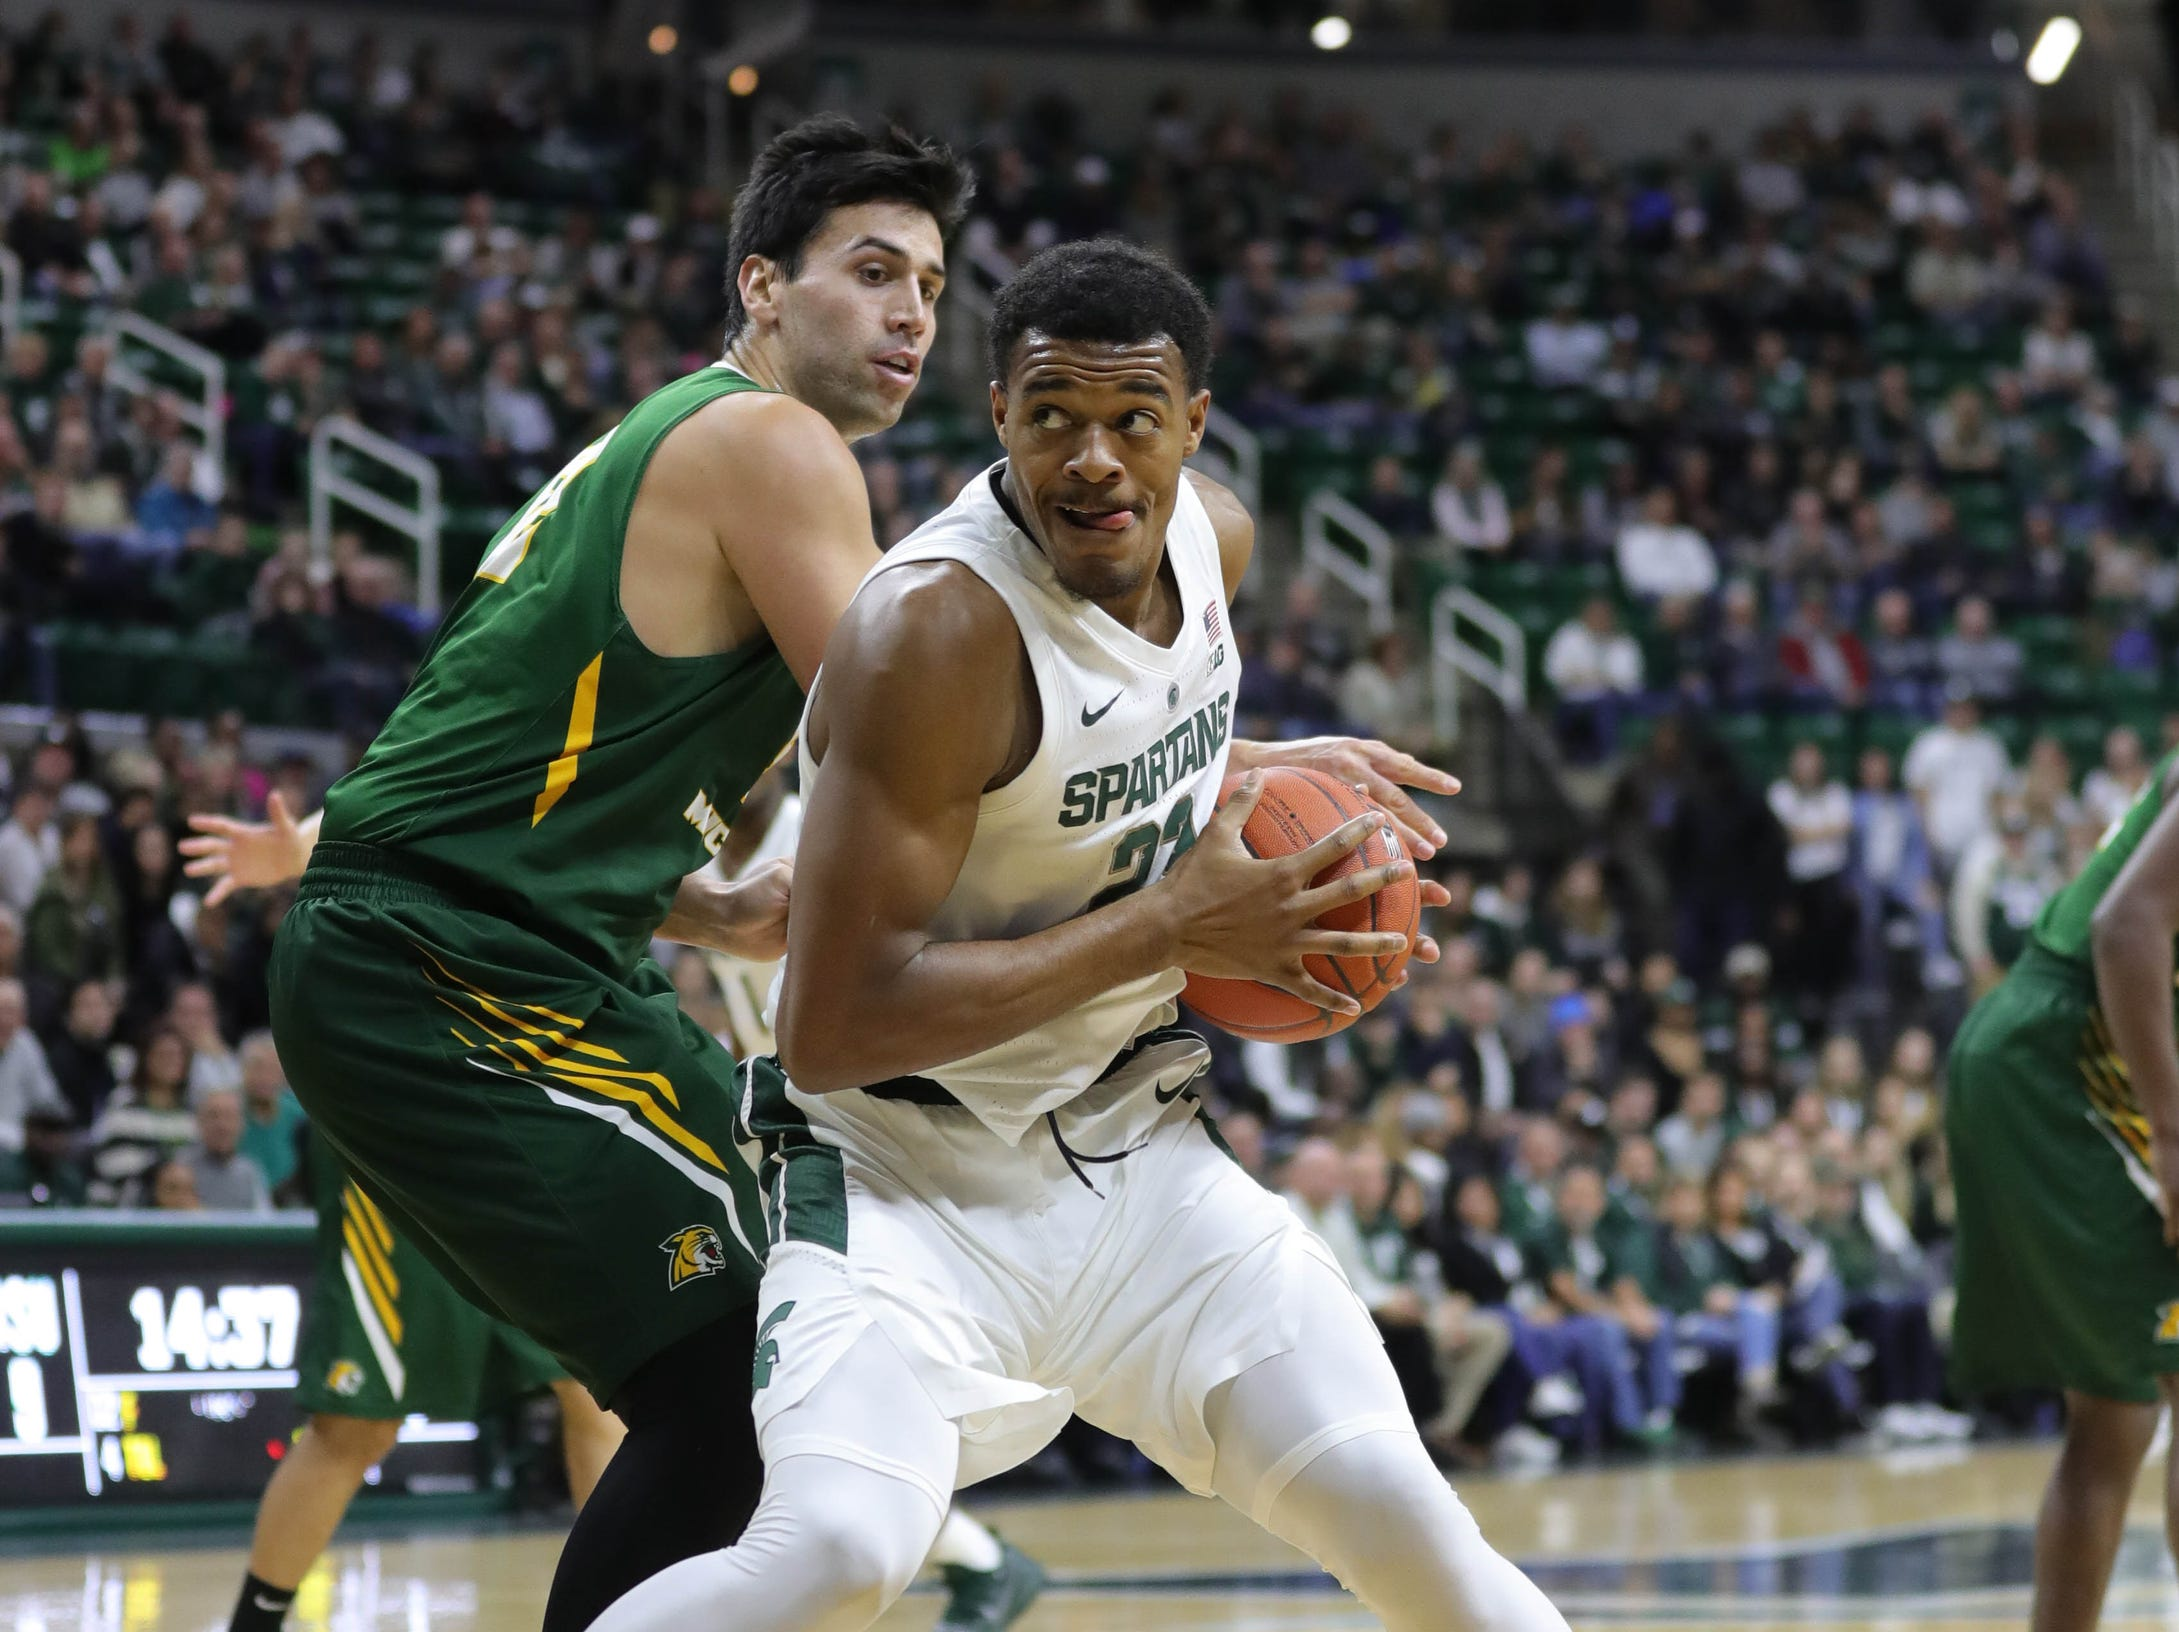 Michigan State forward Xavier Tillman drives Max Pendergast against Northern Michigan during first half action Tuesday, October 30, 2018 at the Breslin Center in East Lansing, Mich.